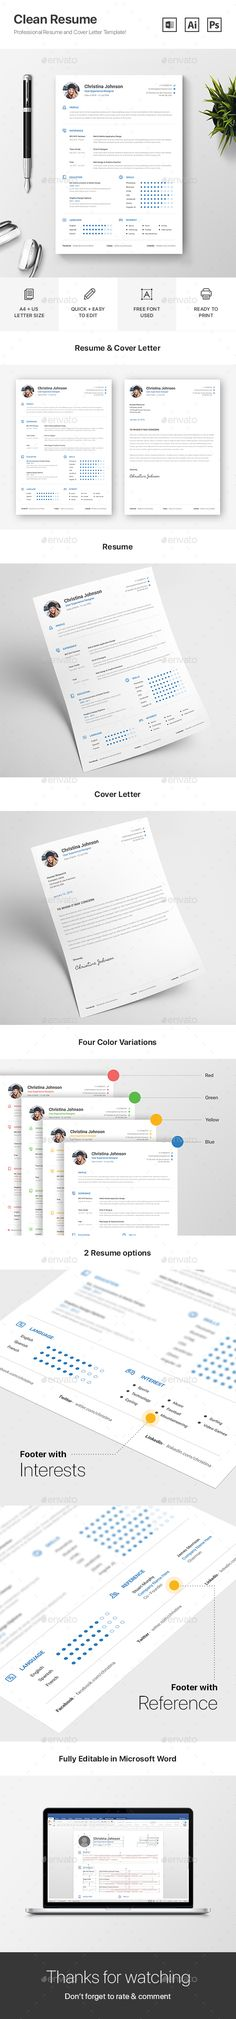 63 best best ms word resume templates images on pinterest resume resume this is a resume cv template with very modern and clean look this thecheapjerseys Images